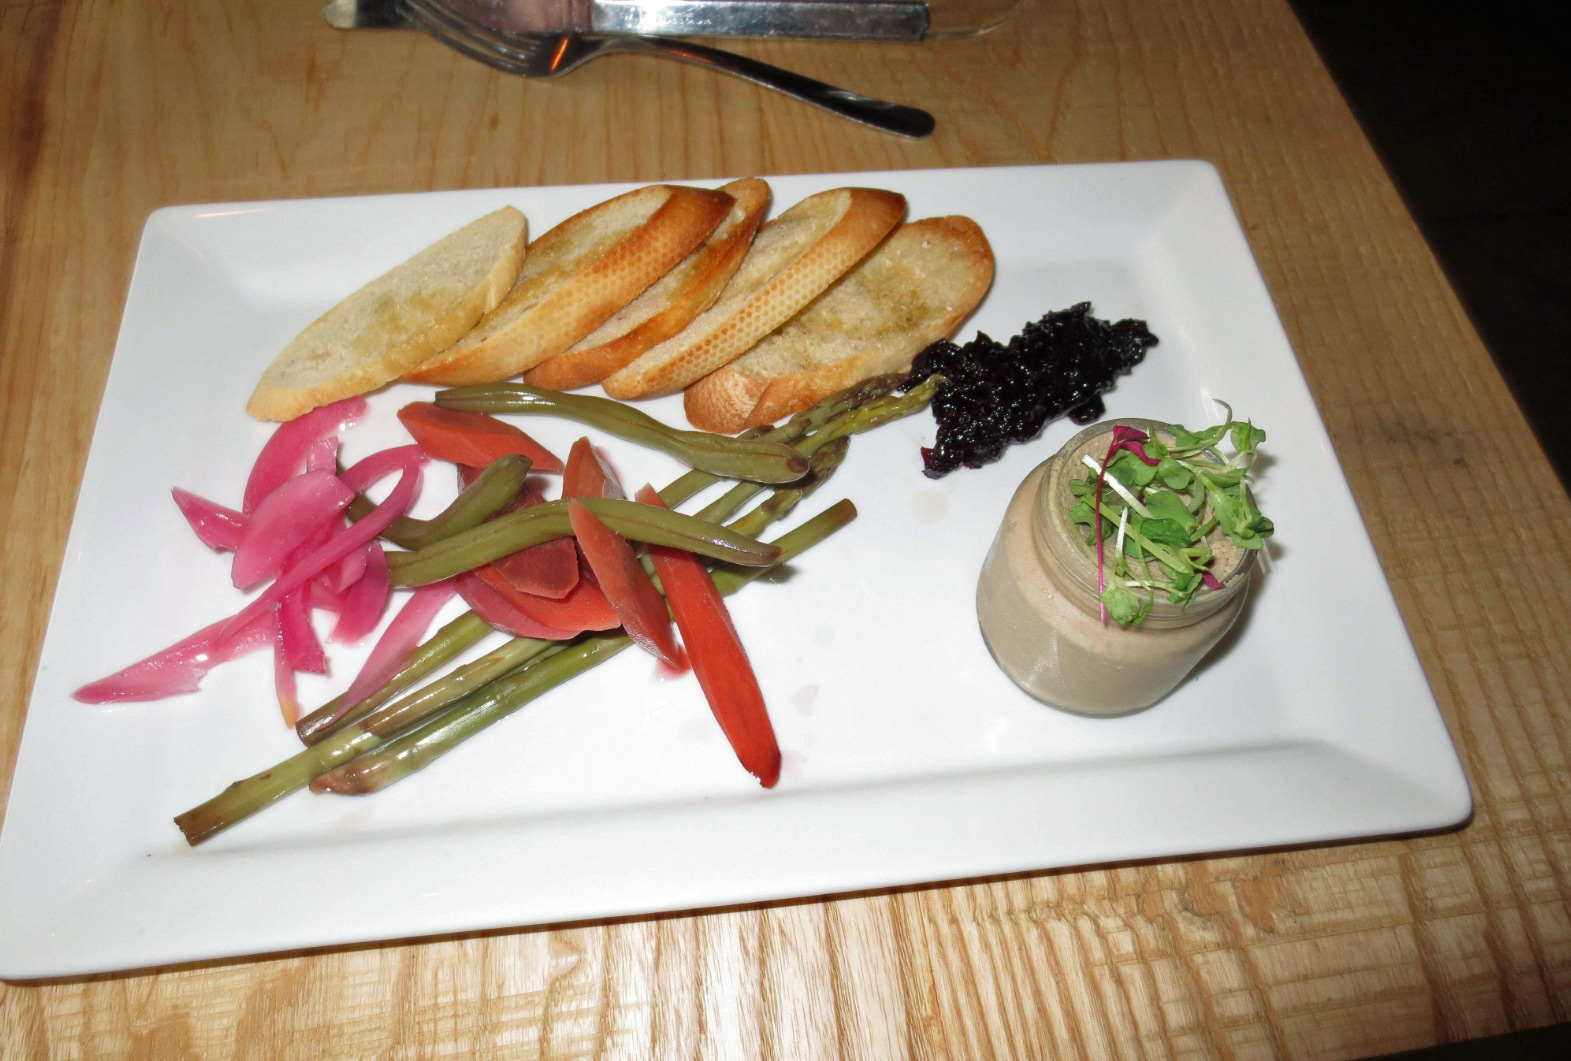 Brick & Mortar's Pork and Chicken Liver Pâté